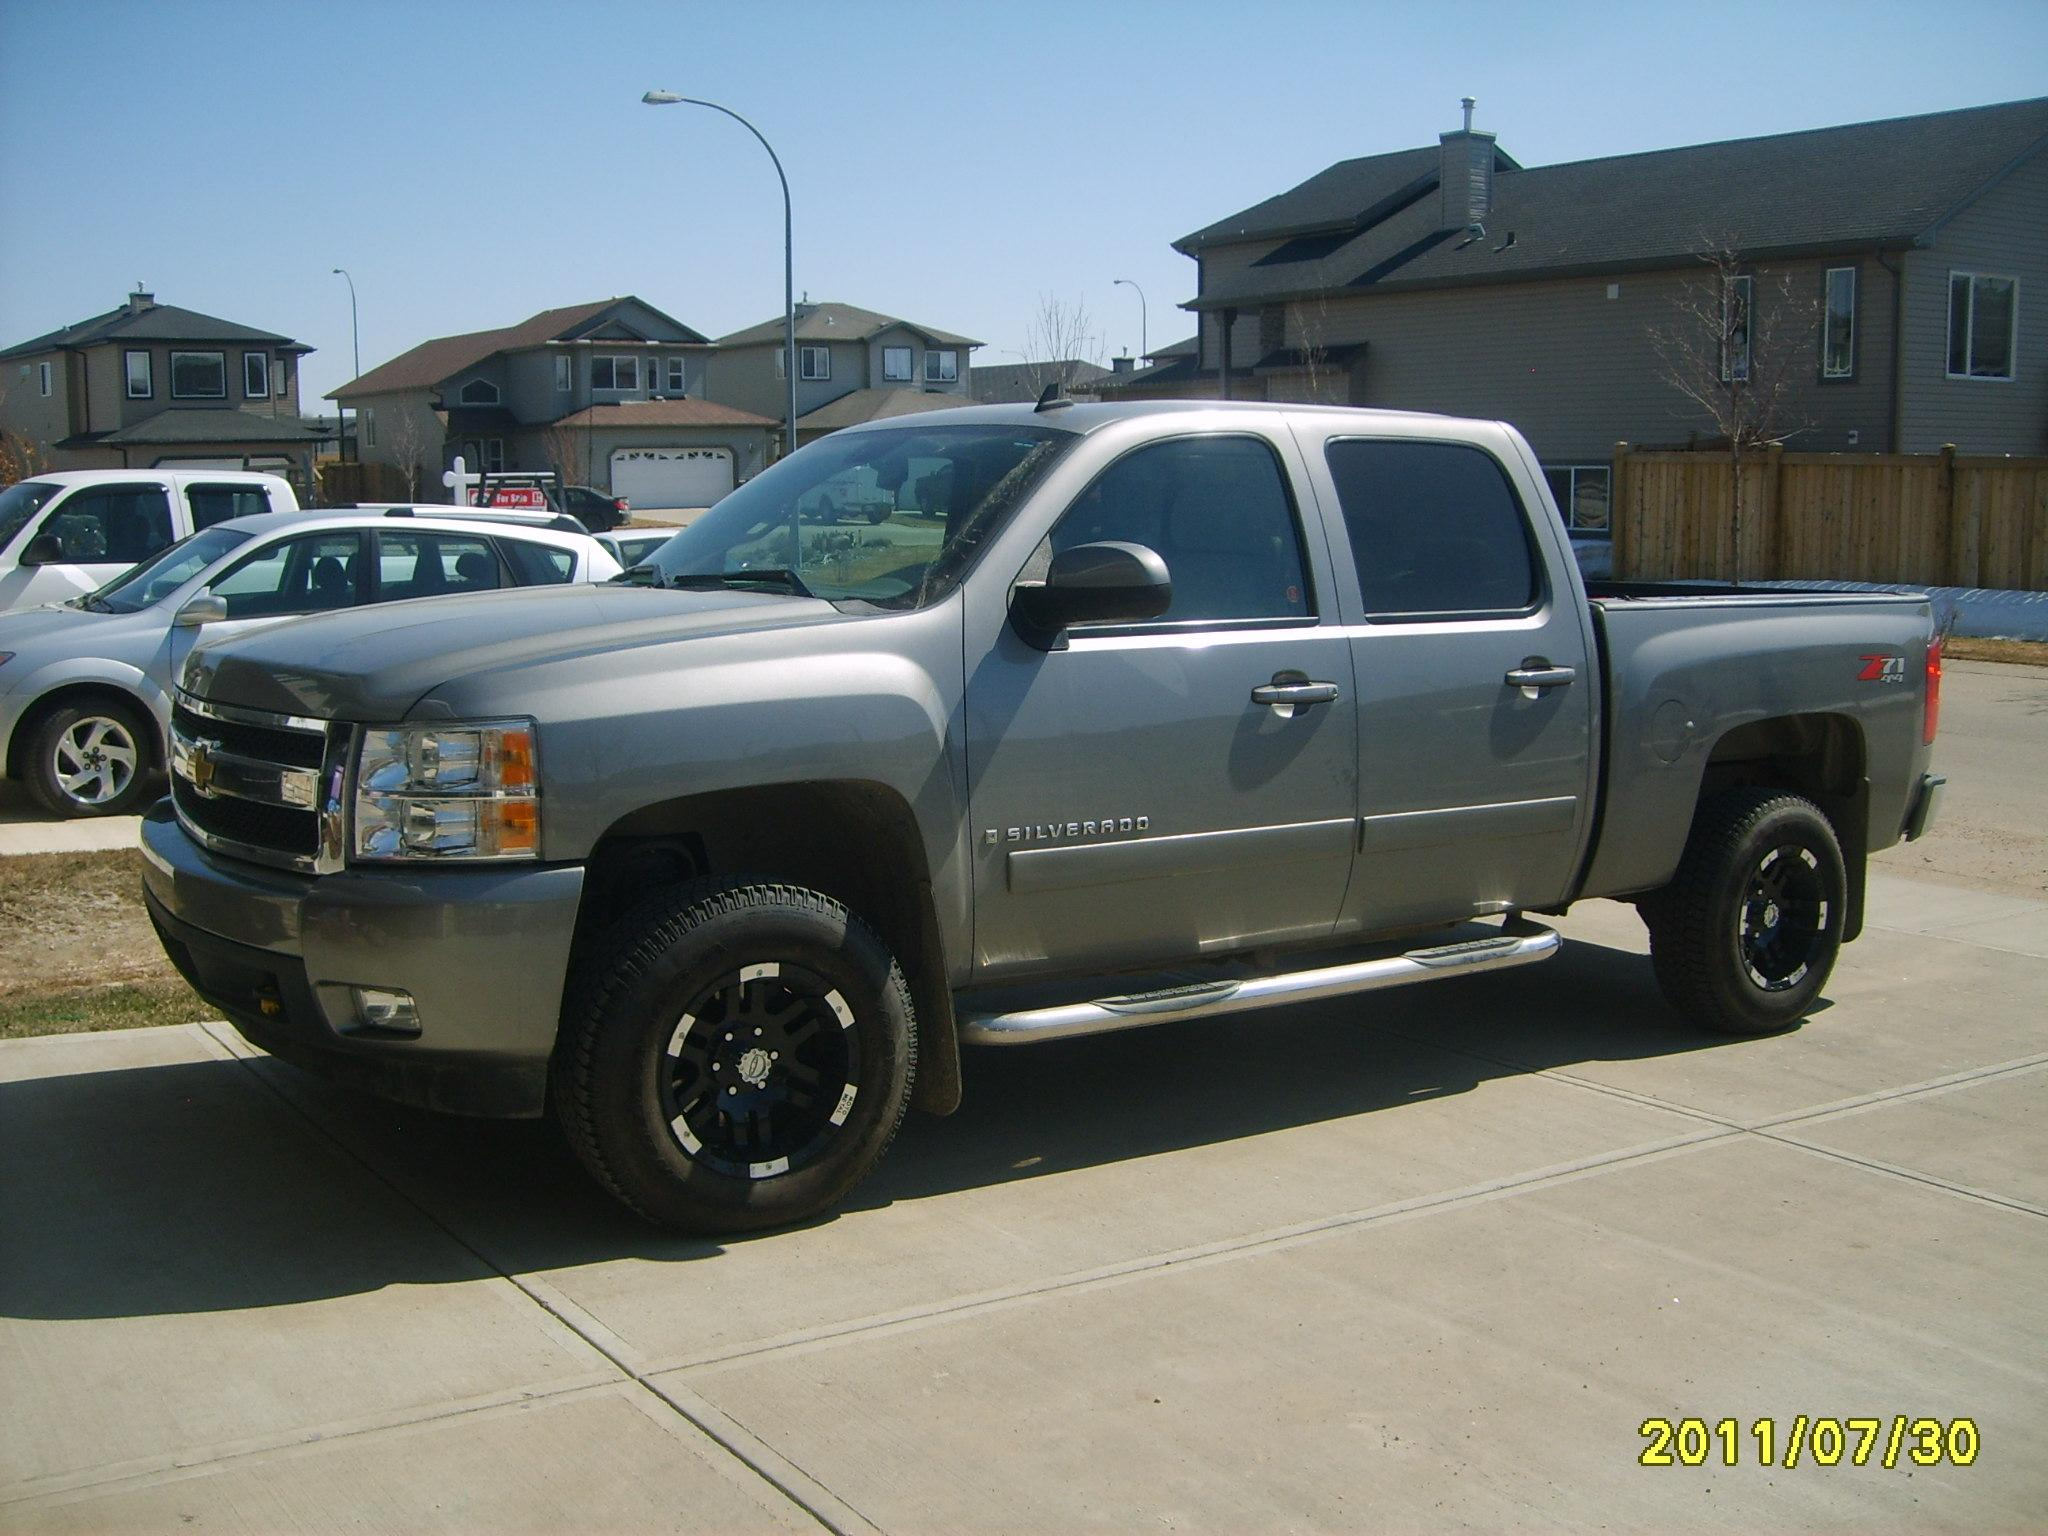 oldveedub 2007 chevrolet silverado 1500 crew cab specs photos modification info at cardomain. Black Bedroom Furniture Sets. Home Design Ideas